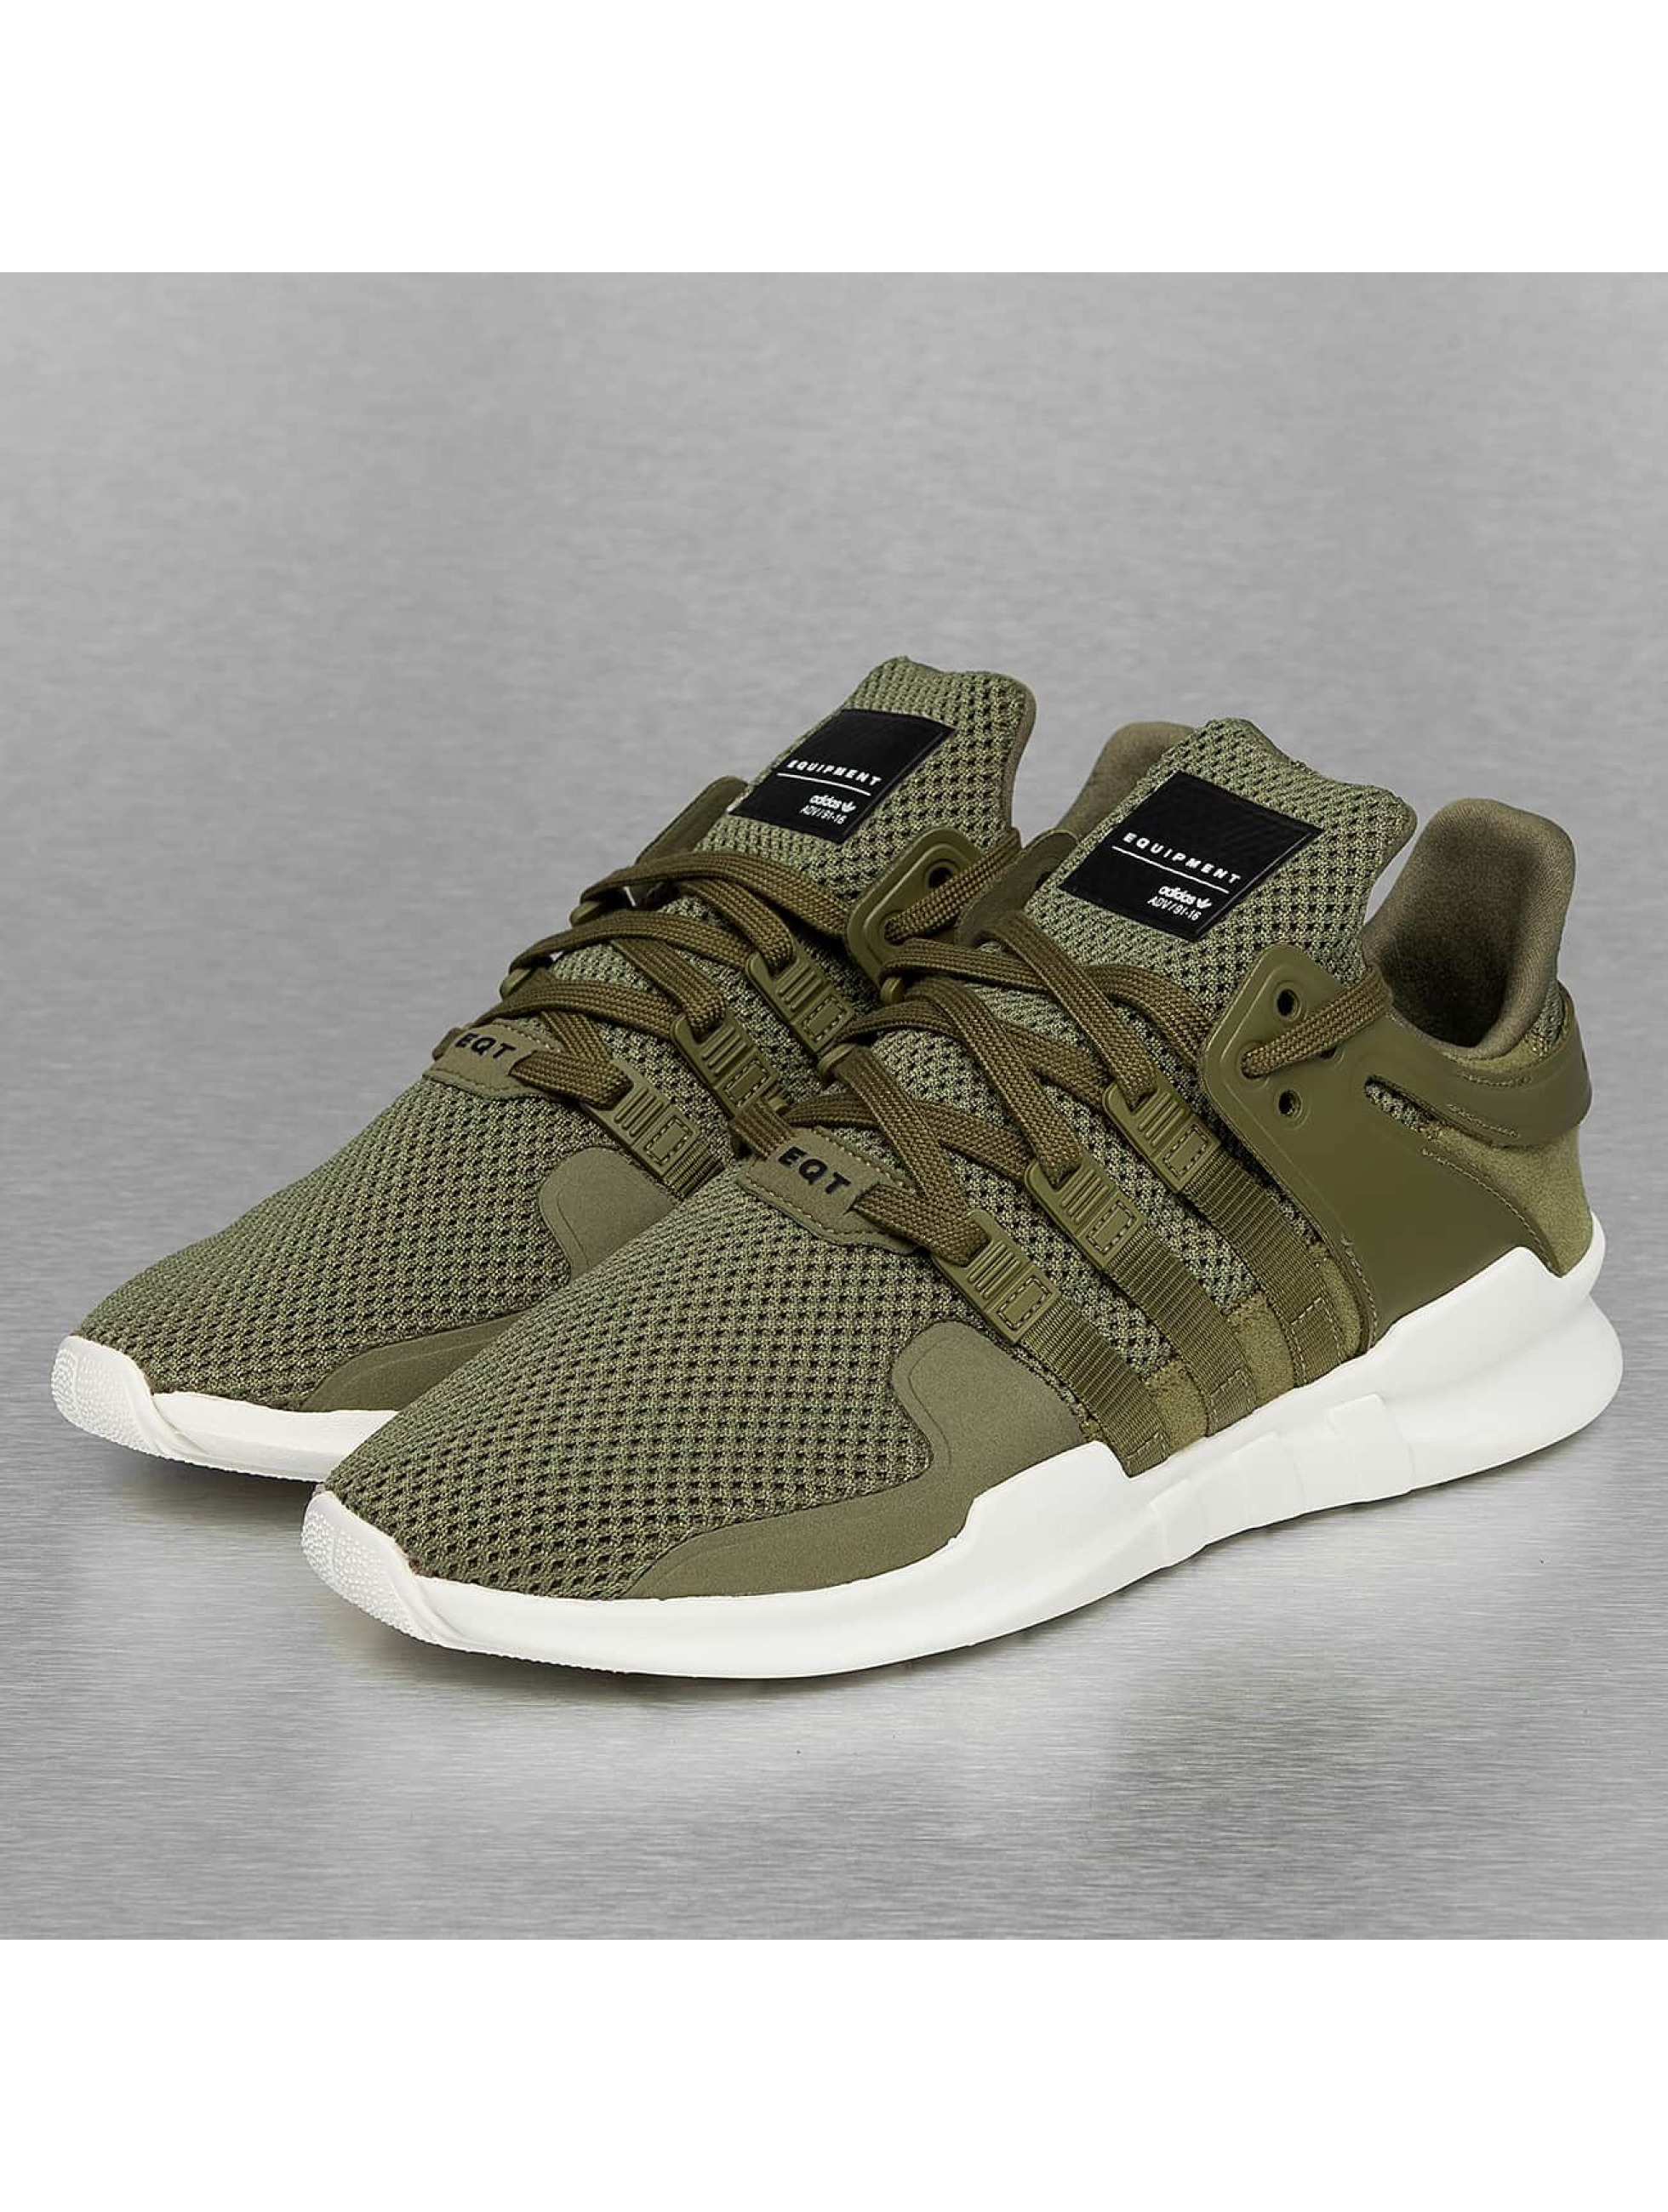 Sneaker Equipment Support ADV in olive